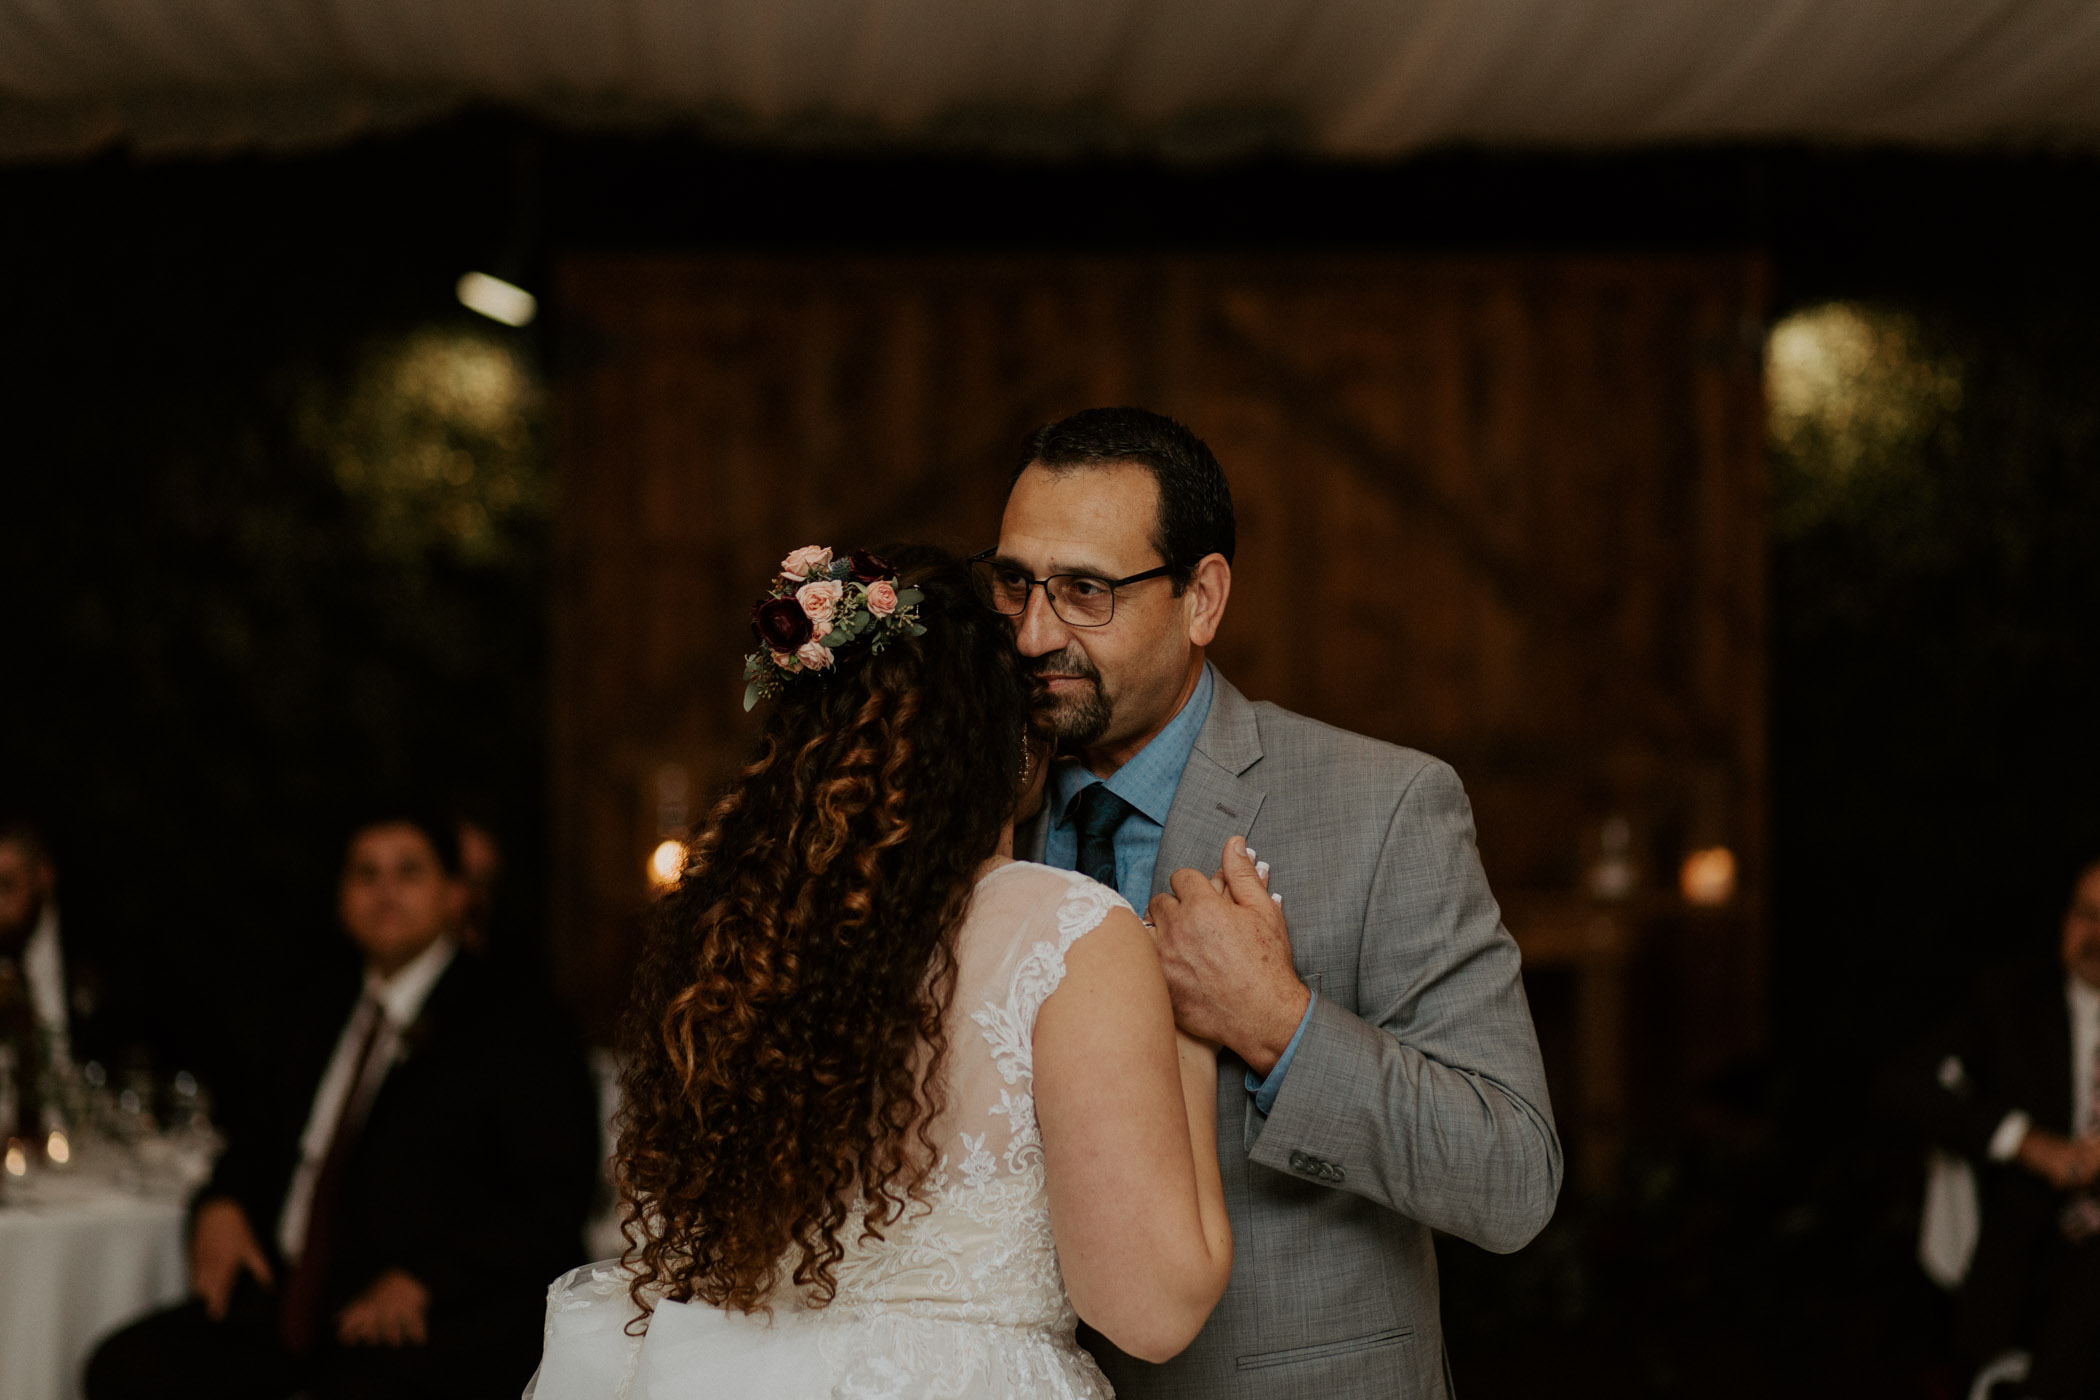 Dad holding daughter close as they share a dance on her wedding day